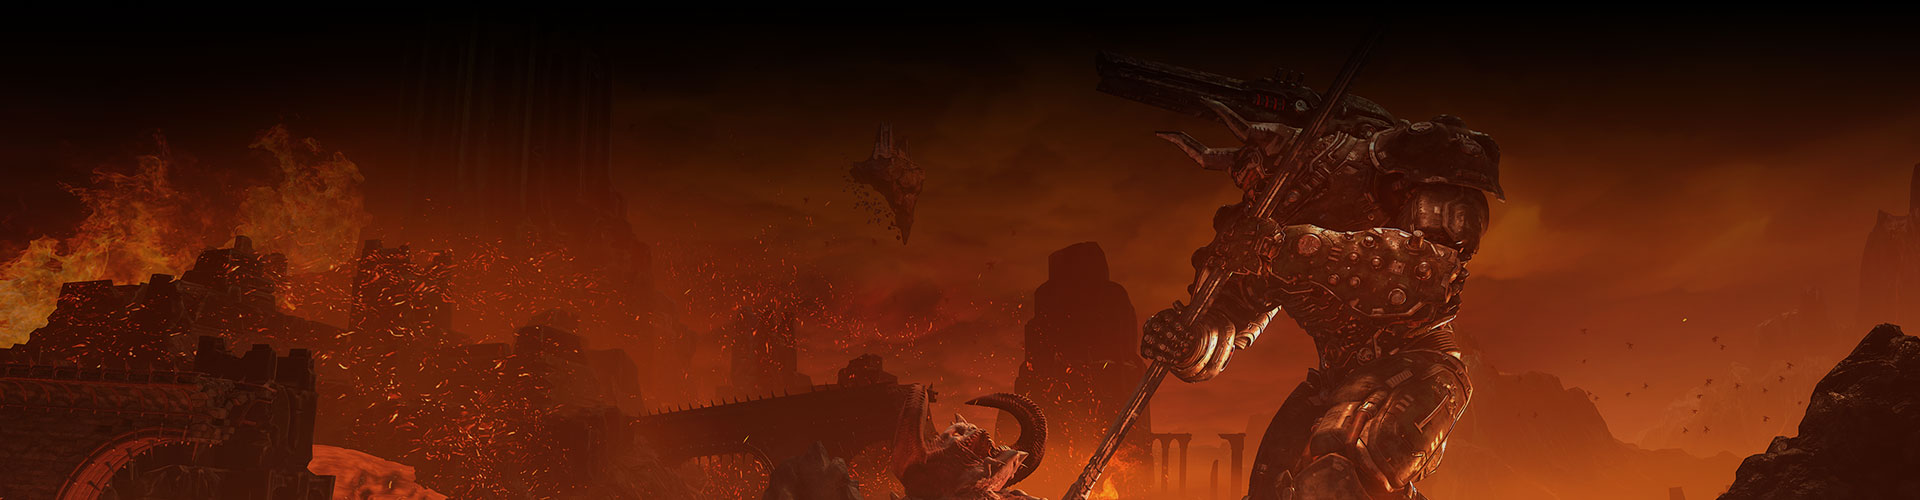 An underworld of monsters and spewing red lava in DOOM Eternal.